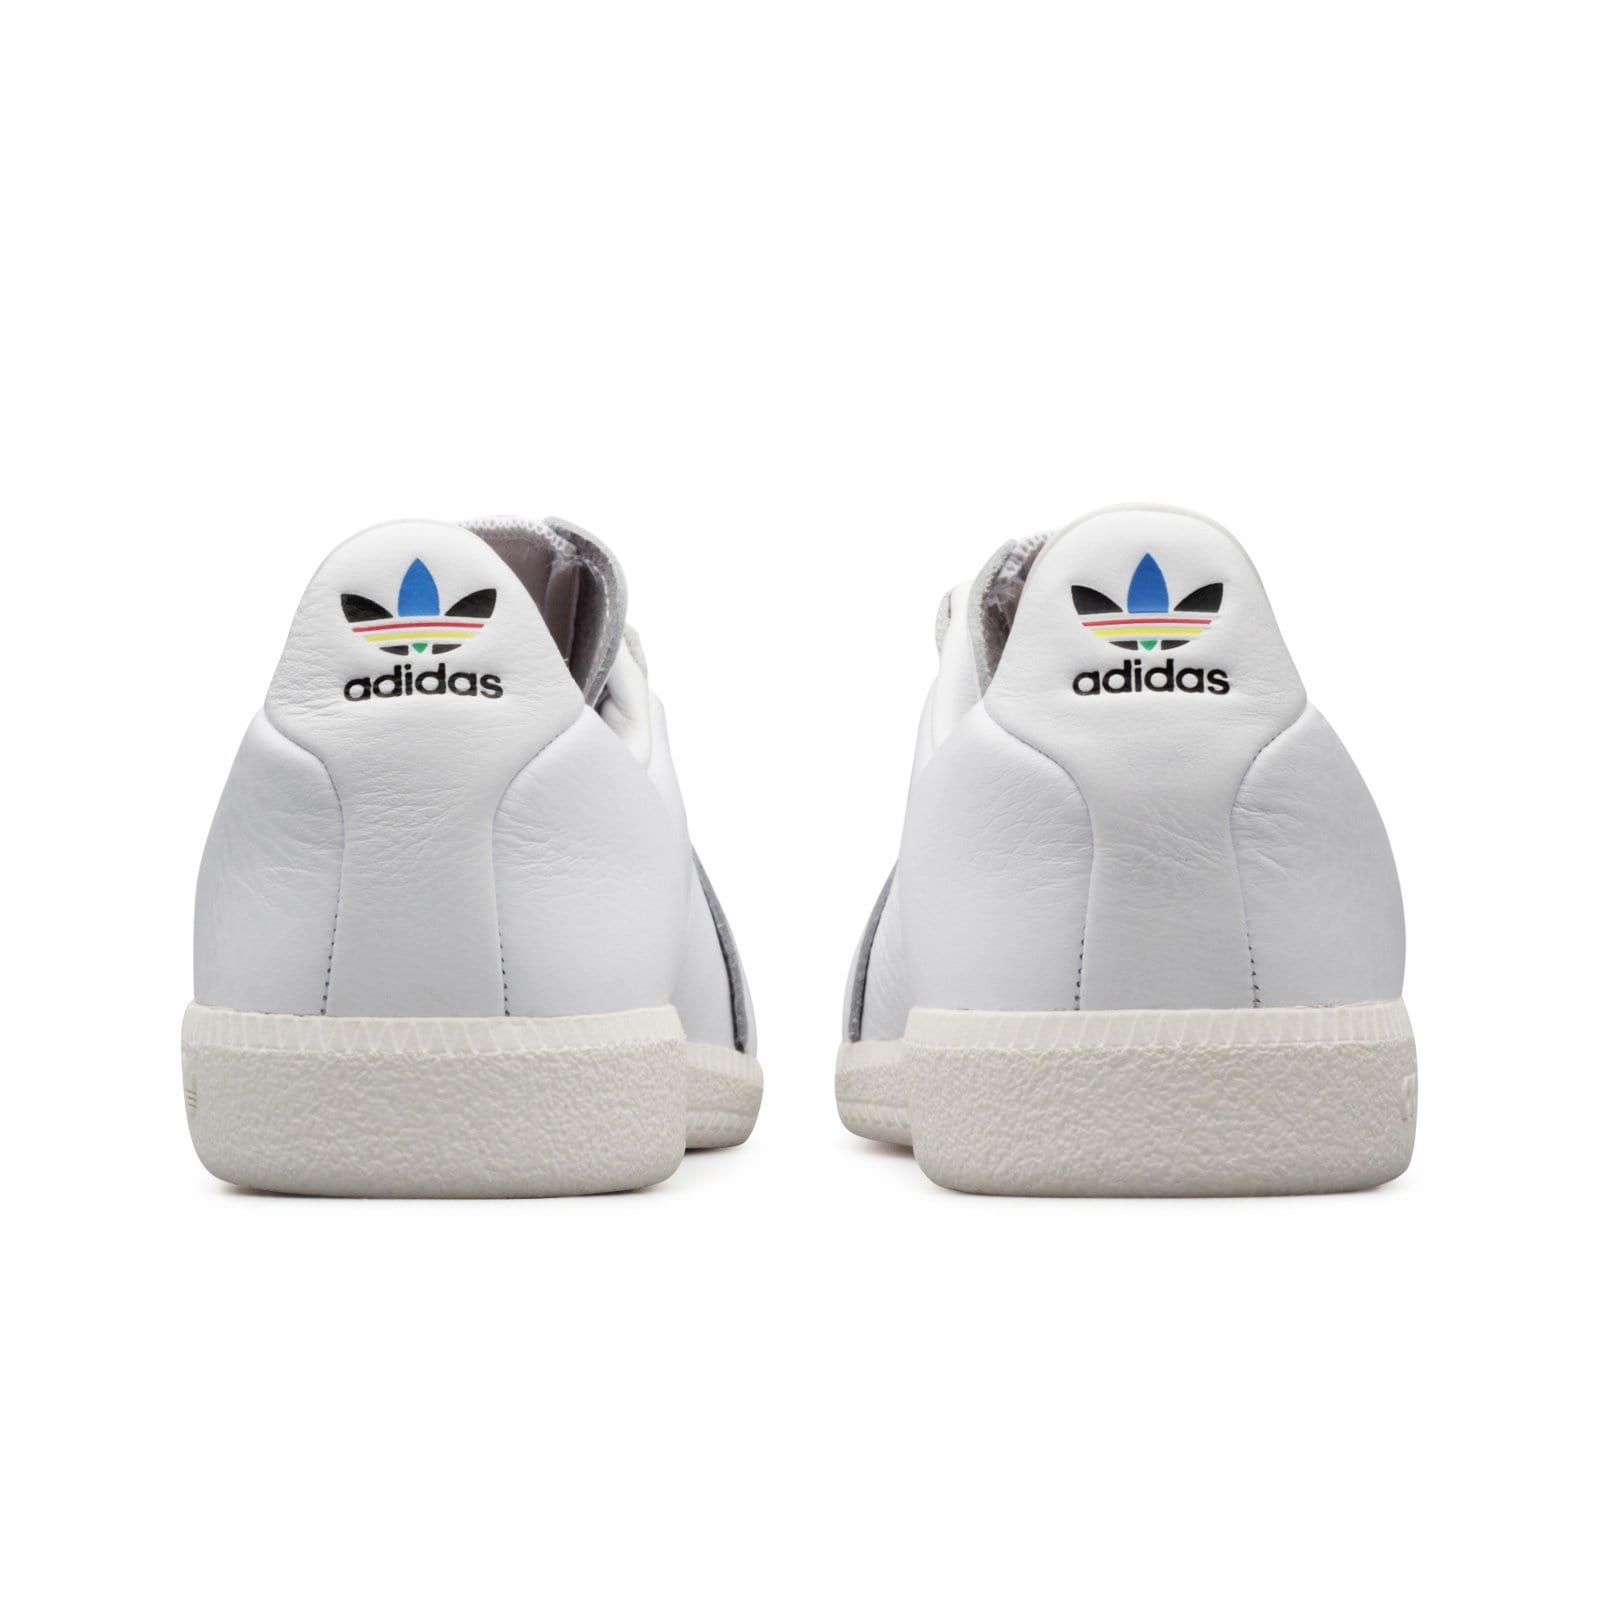 quality design b449d b0a7b Adidas x Oyster Holdings BW ARMY Cloud WhiteOff WhiteCore Black